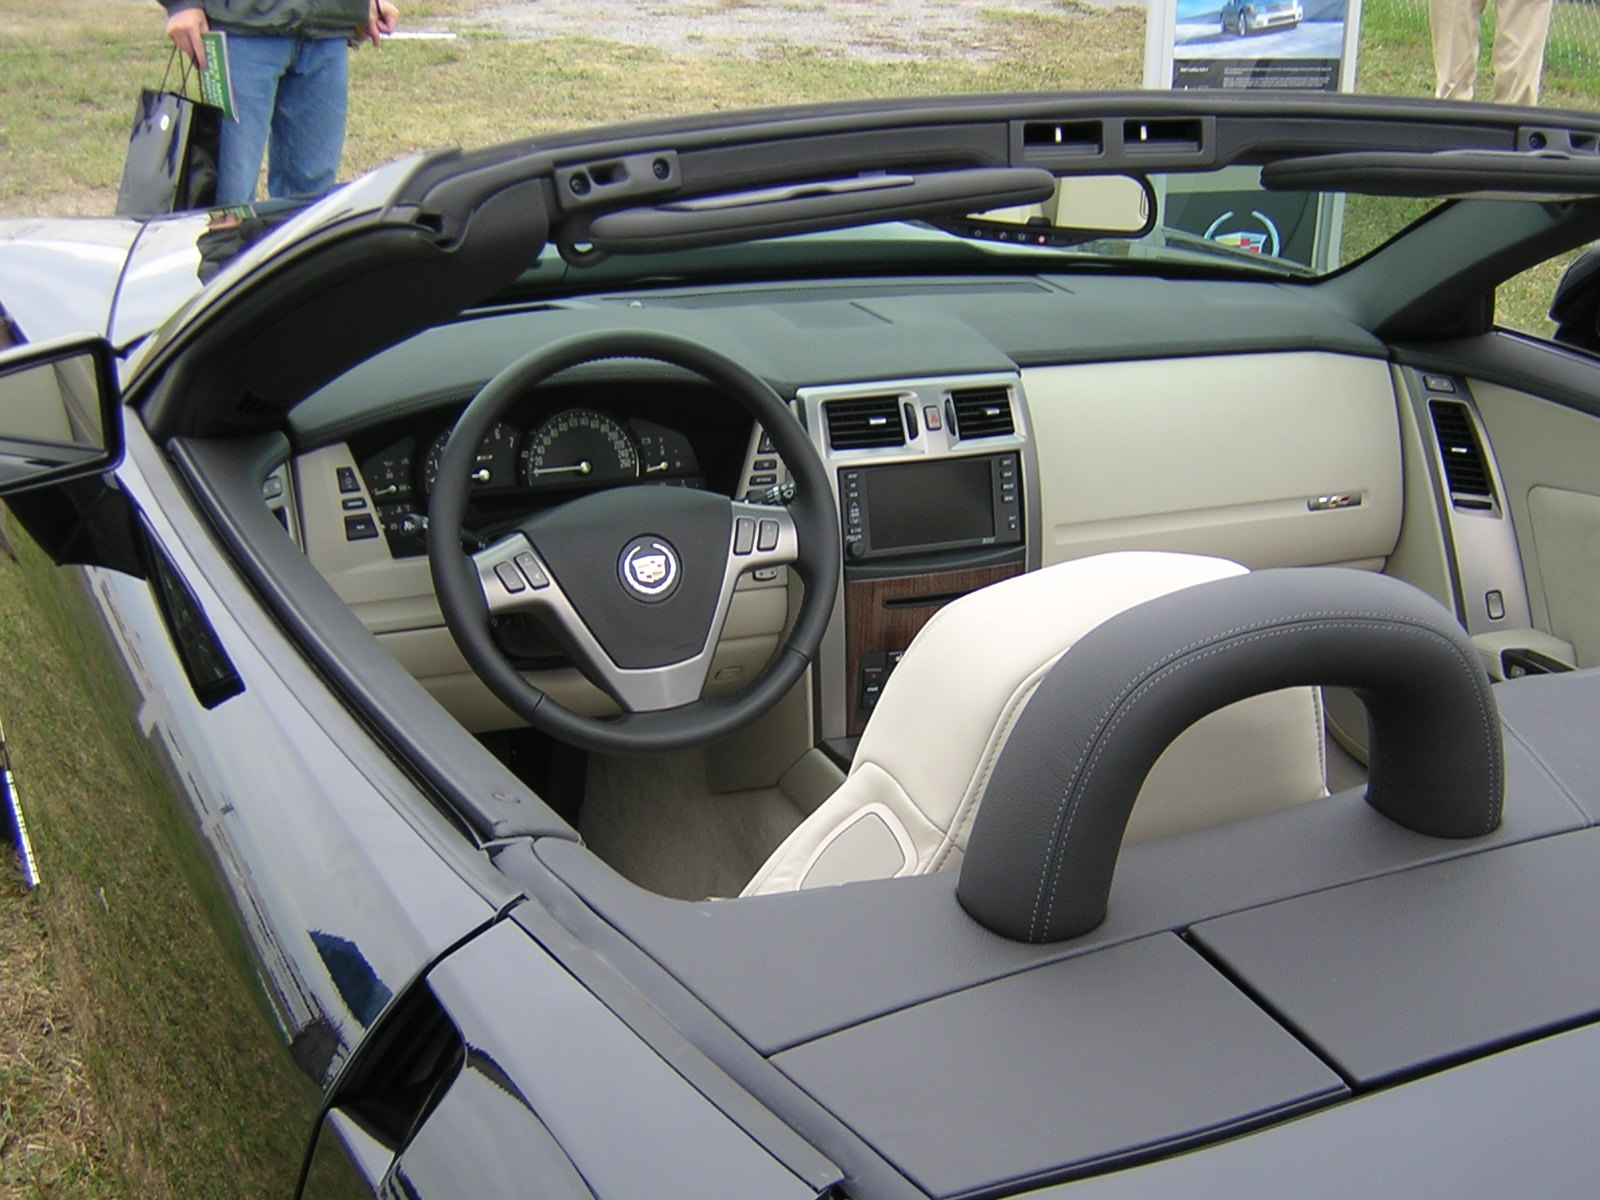 hight resolution of the cadillac xlr appears to be a very comfortable car